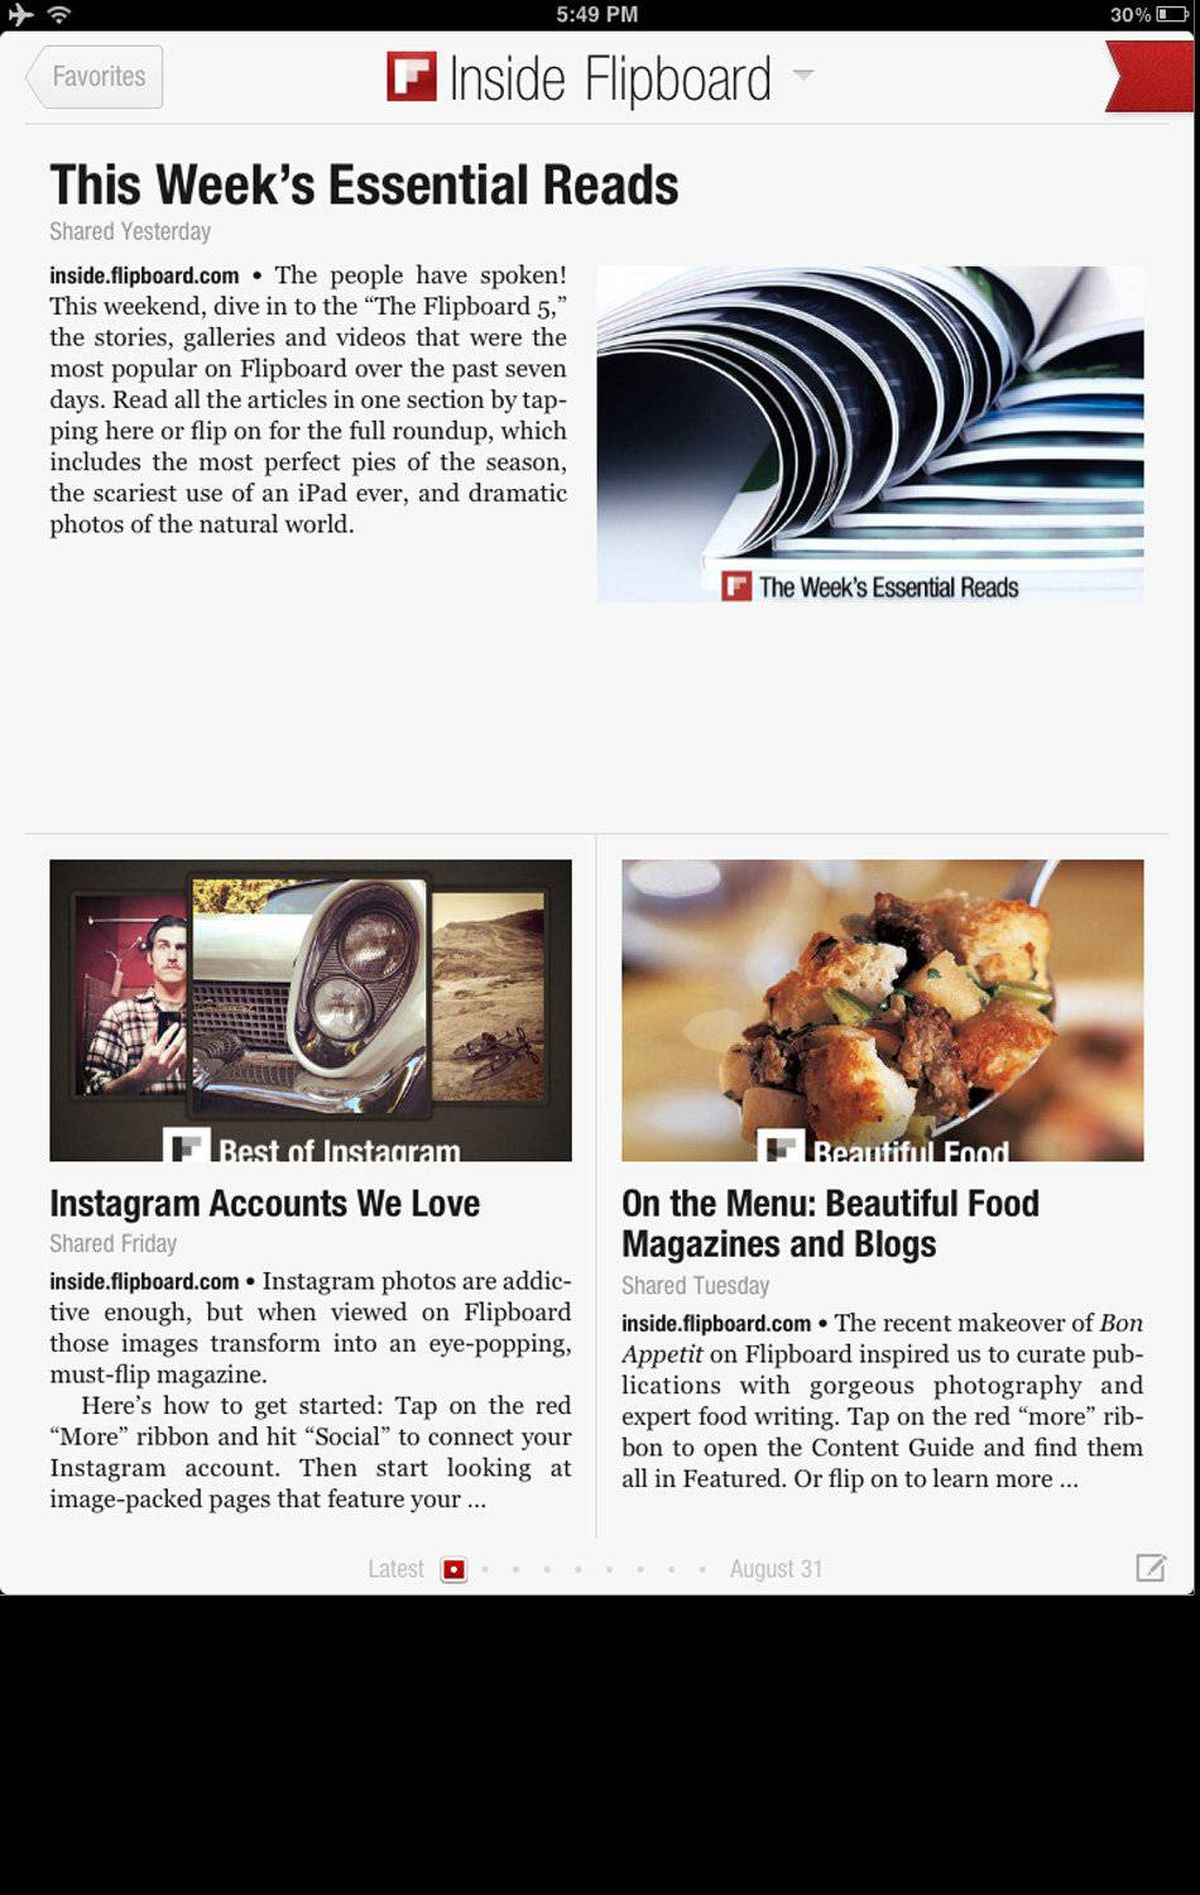 Flipboard Flipboard is like a personal magazine, filled with things you care about, presented in an attractive, easy-to-use format. Browsing through news, photos, blogs, and videos by flipping pages feels like the future. Flipboard comes with some popular content pre-selected and organized by section. You can personalize Flipboard by creating your own sections, featuring your favourite news or other web sites, you can also link to Facebook, Twitter, and other social media sites to get all your friend updates in one place. (www.flipboard.com)